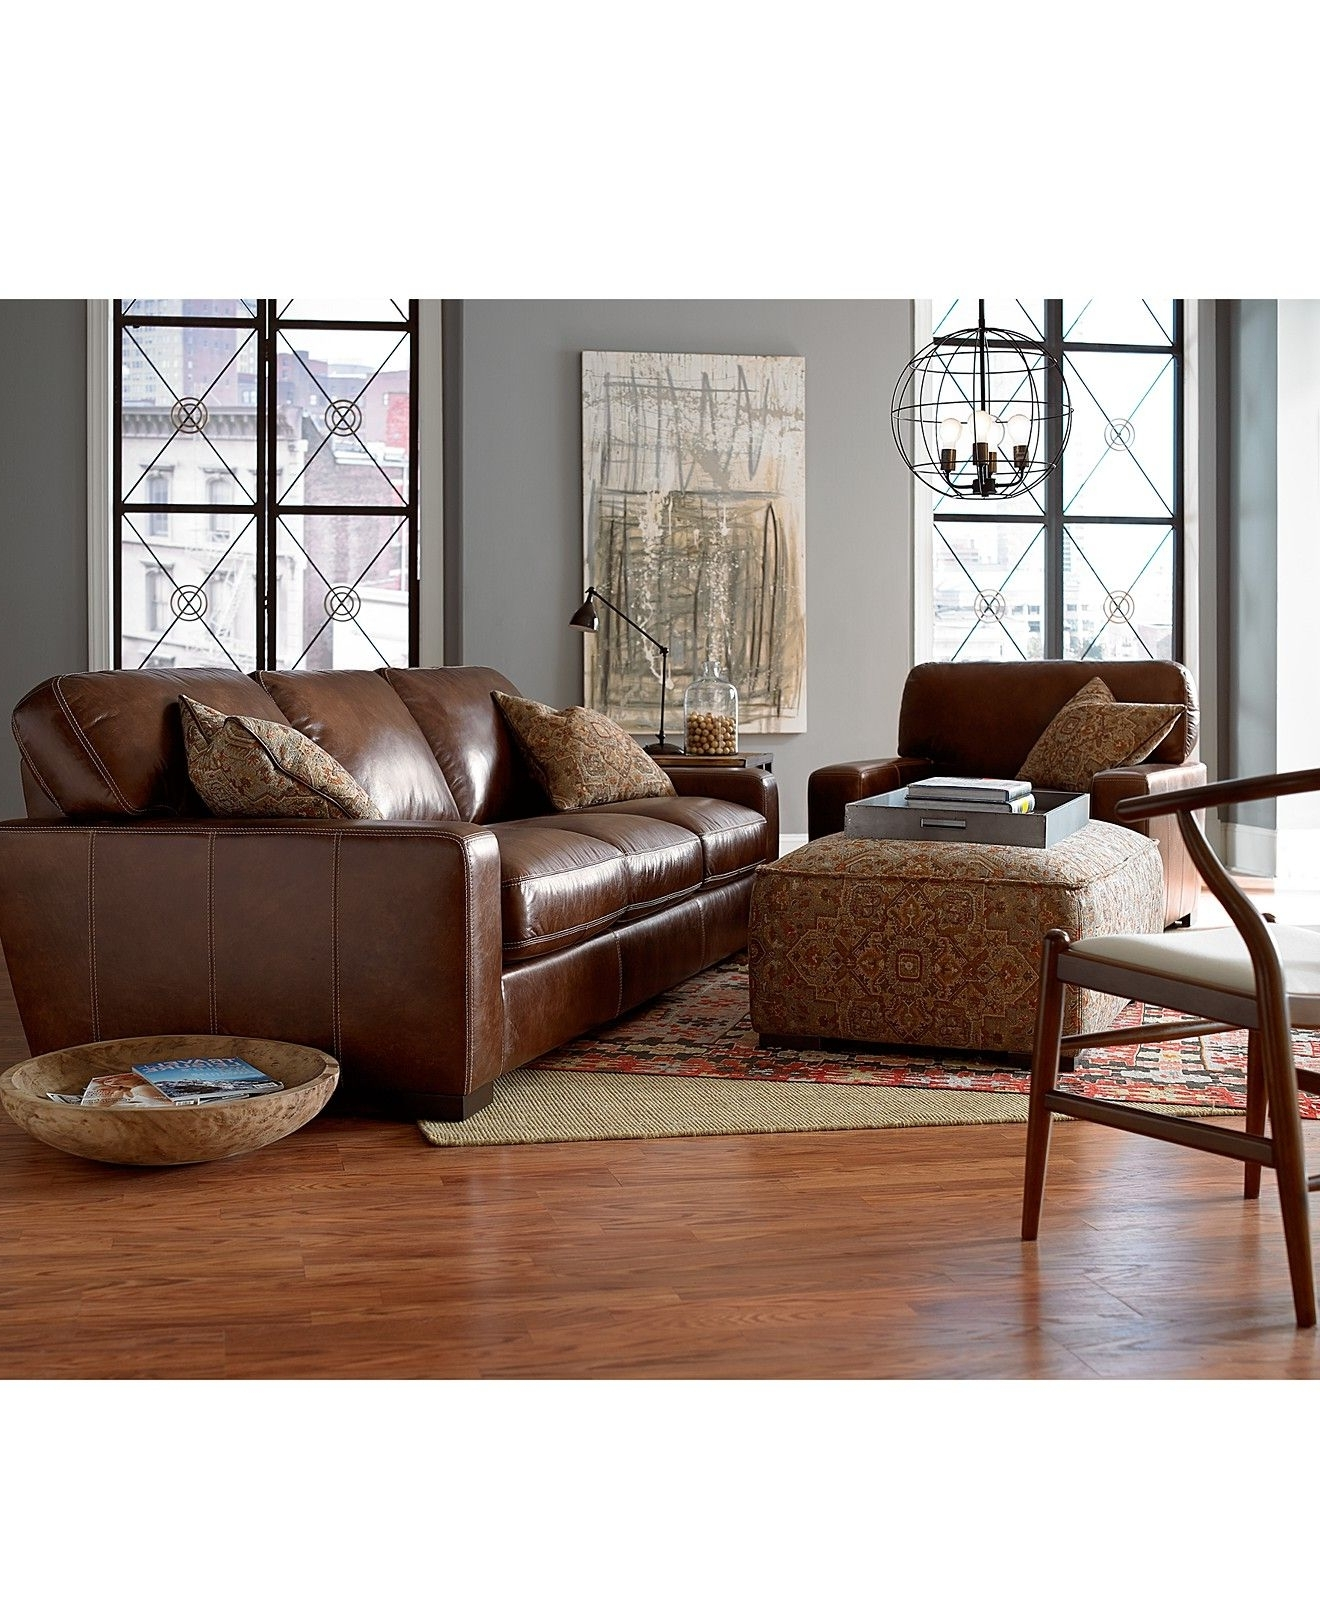 Macys With Regard To Current Macys Leather Sofas (View 19 of 20)